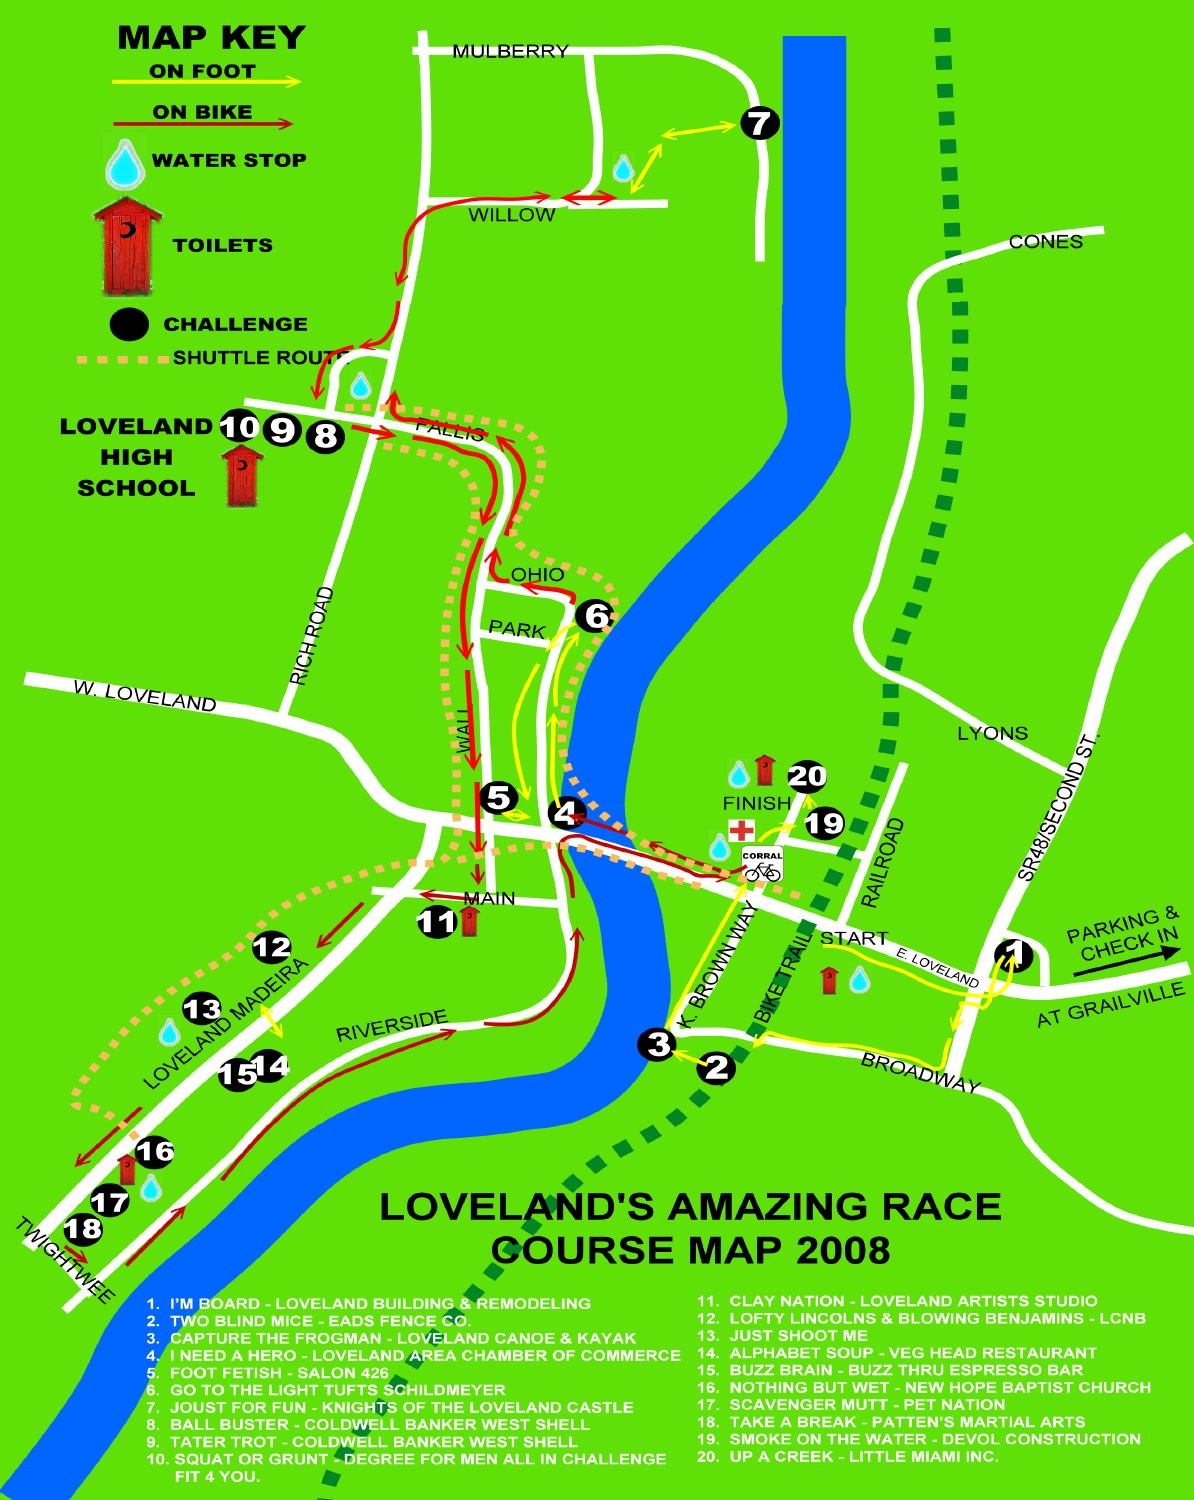 2008 Course Map